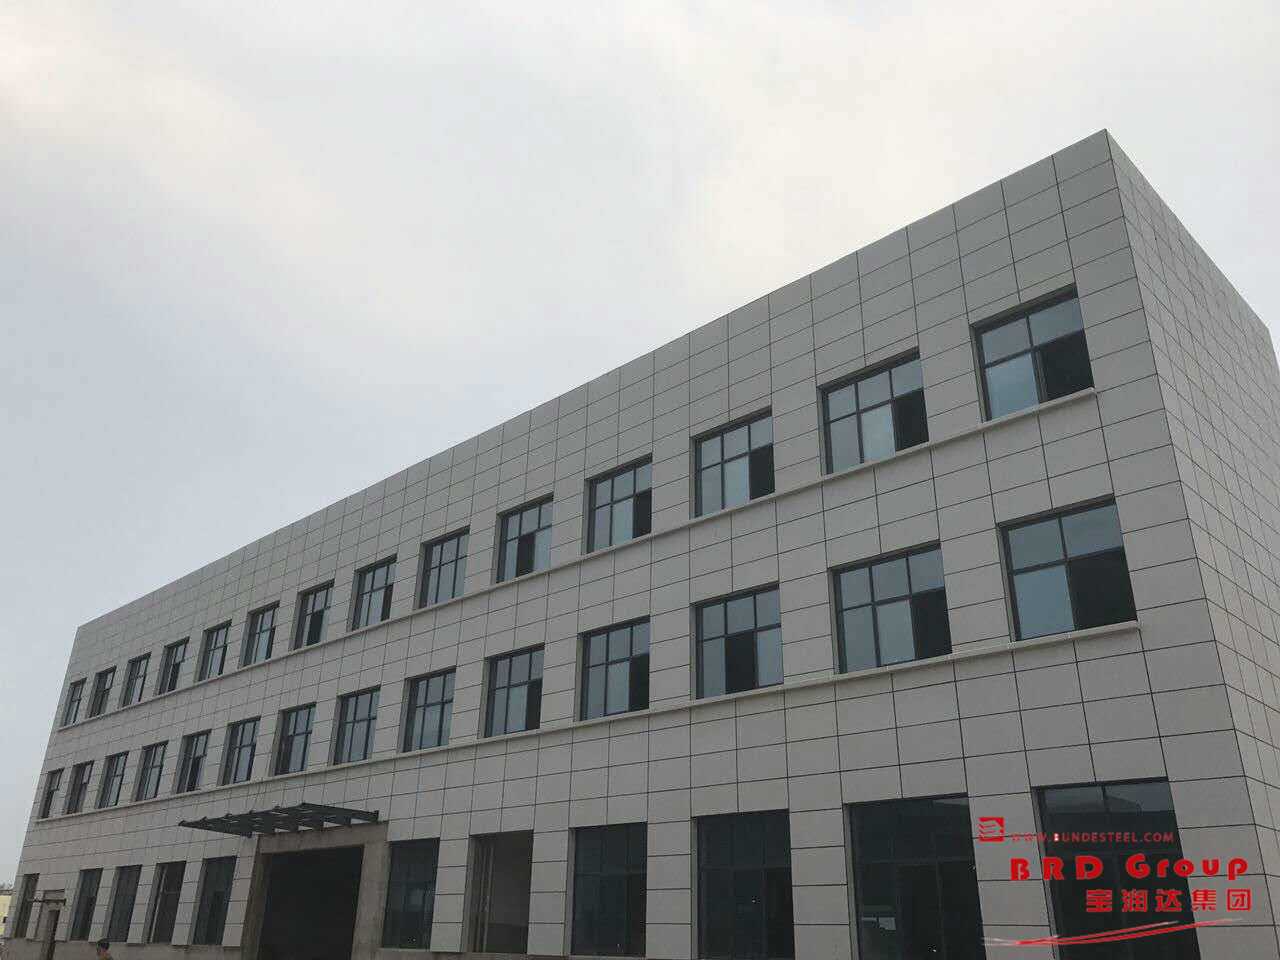 external wall cladding system